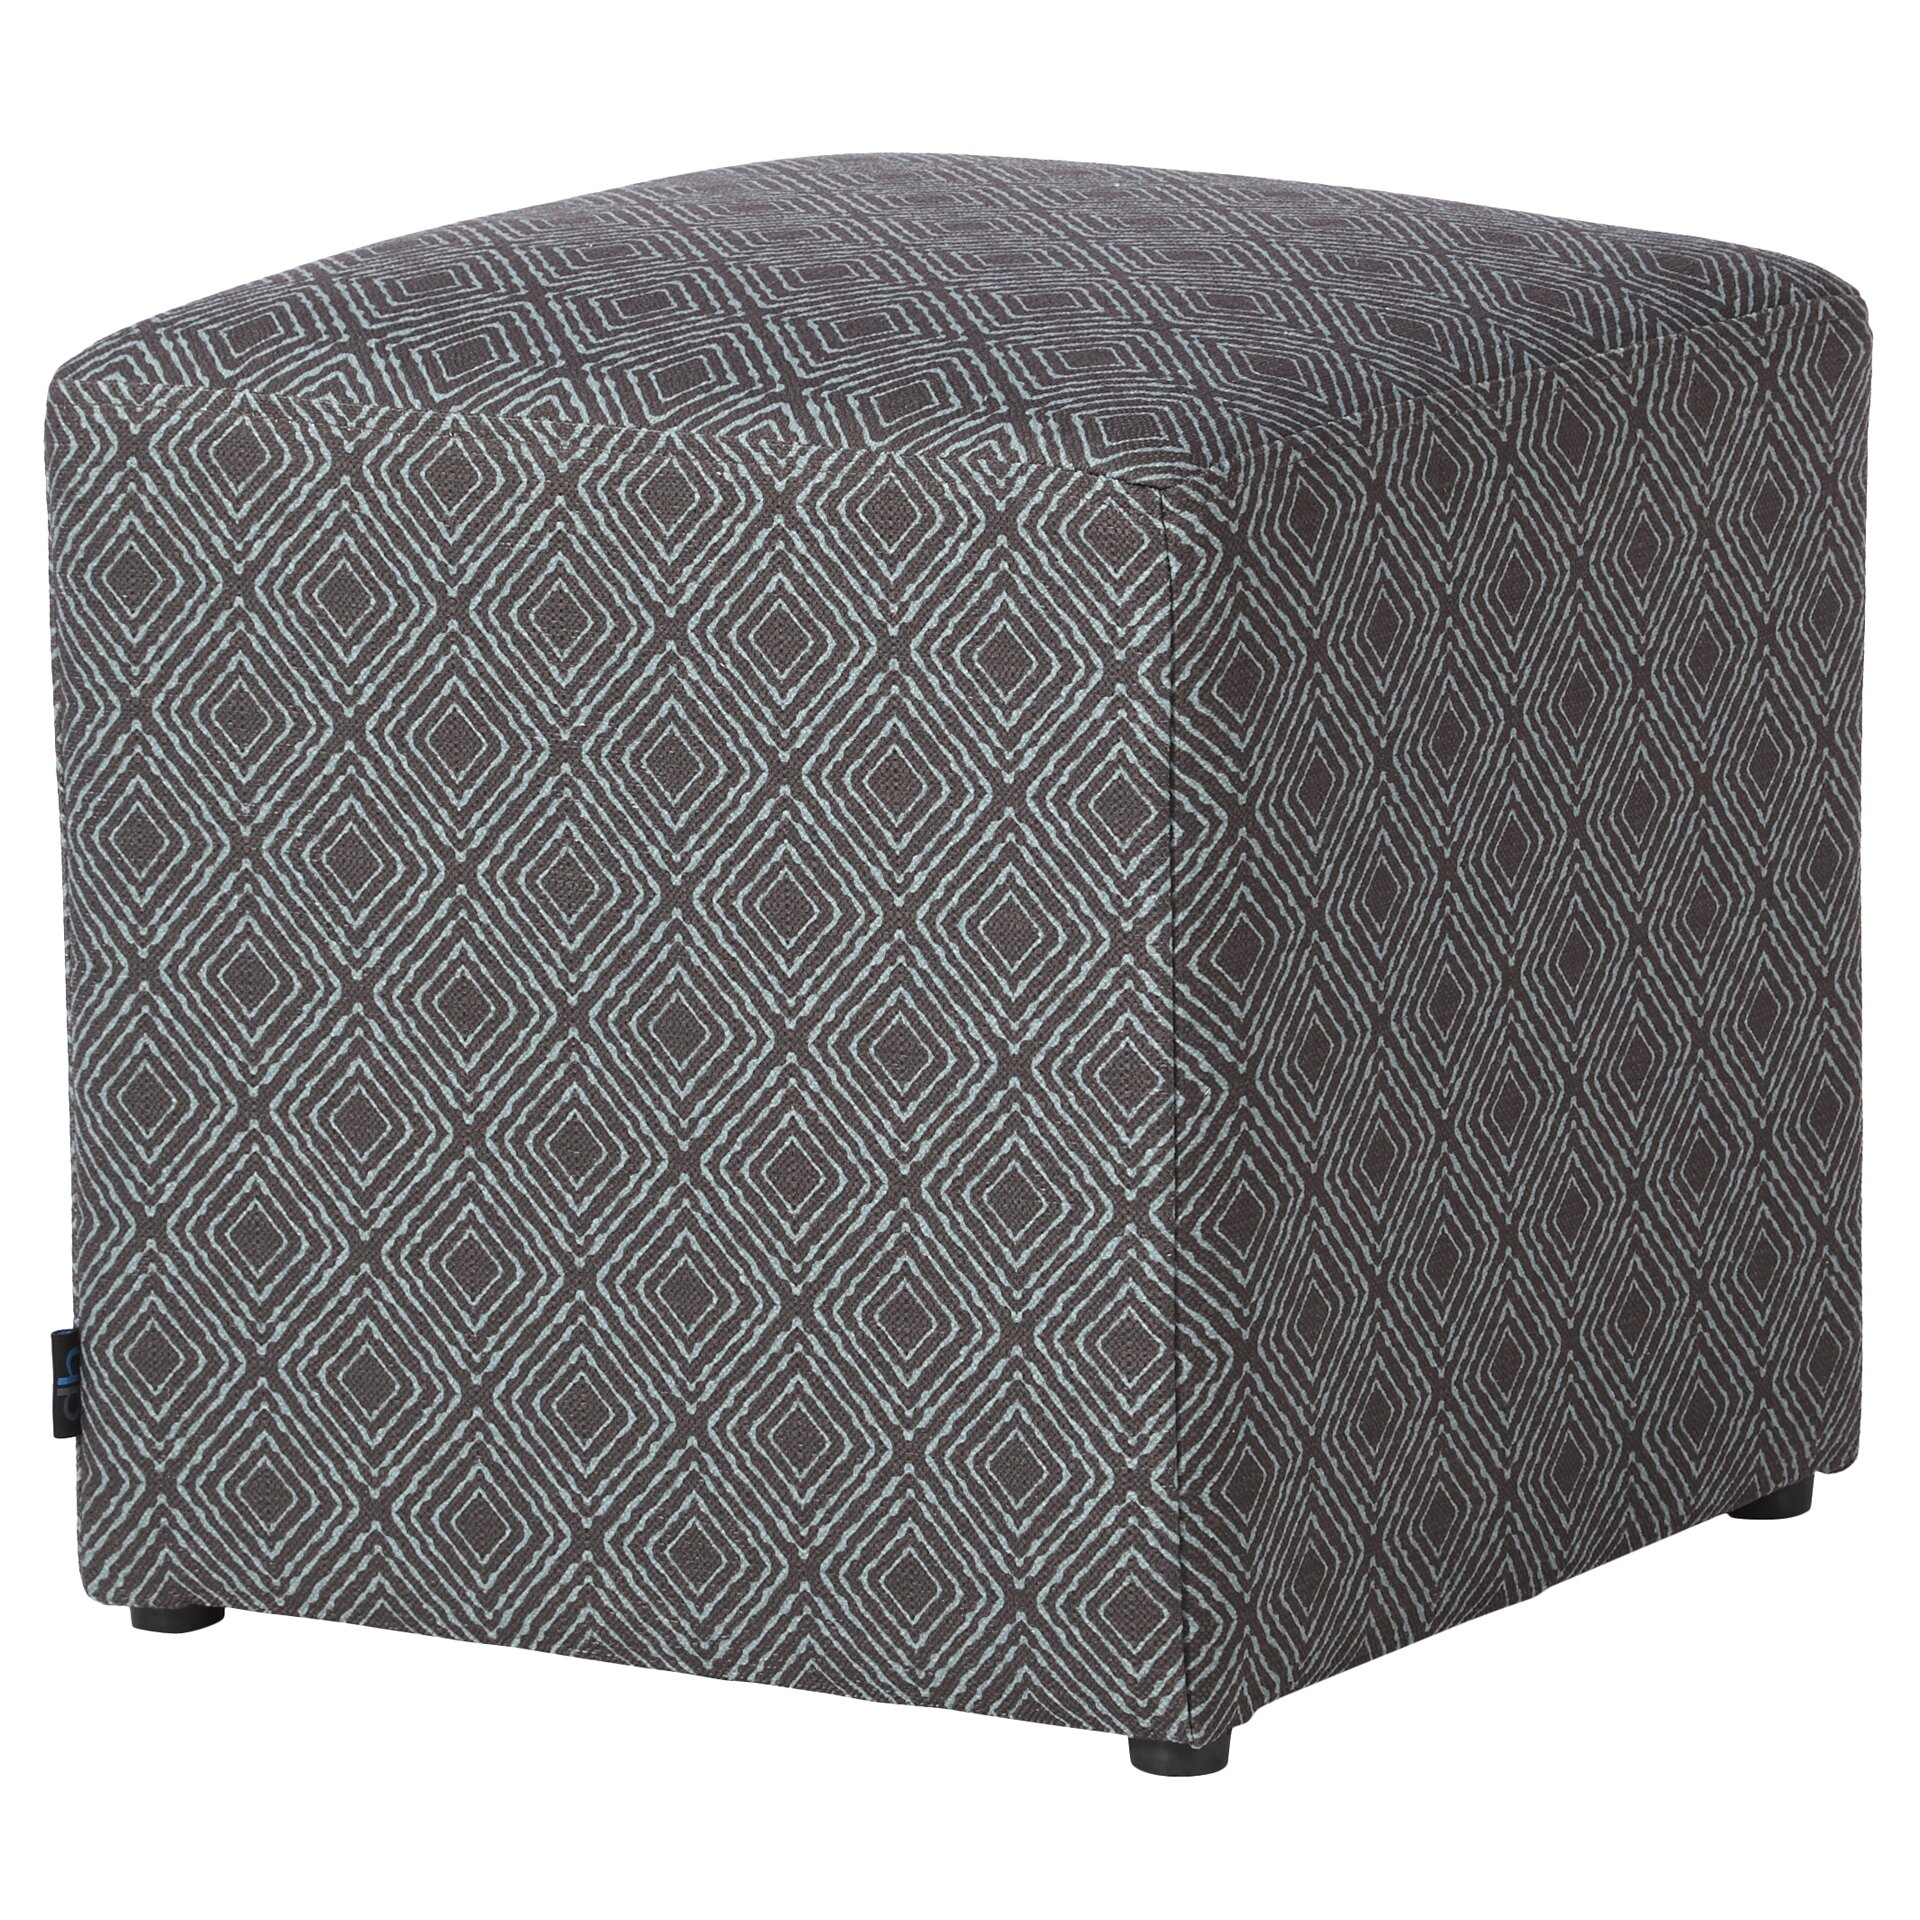 Zipcode Design Jillian Cube Ottoman Reviews Wayfair